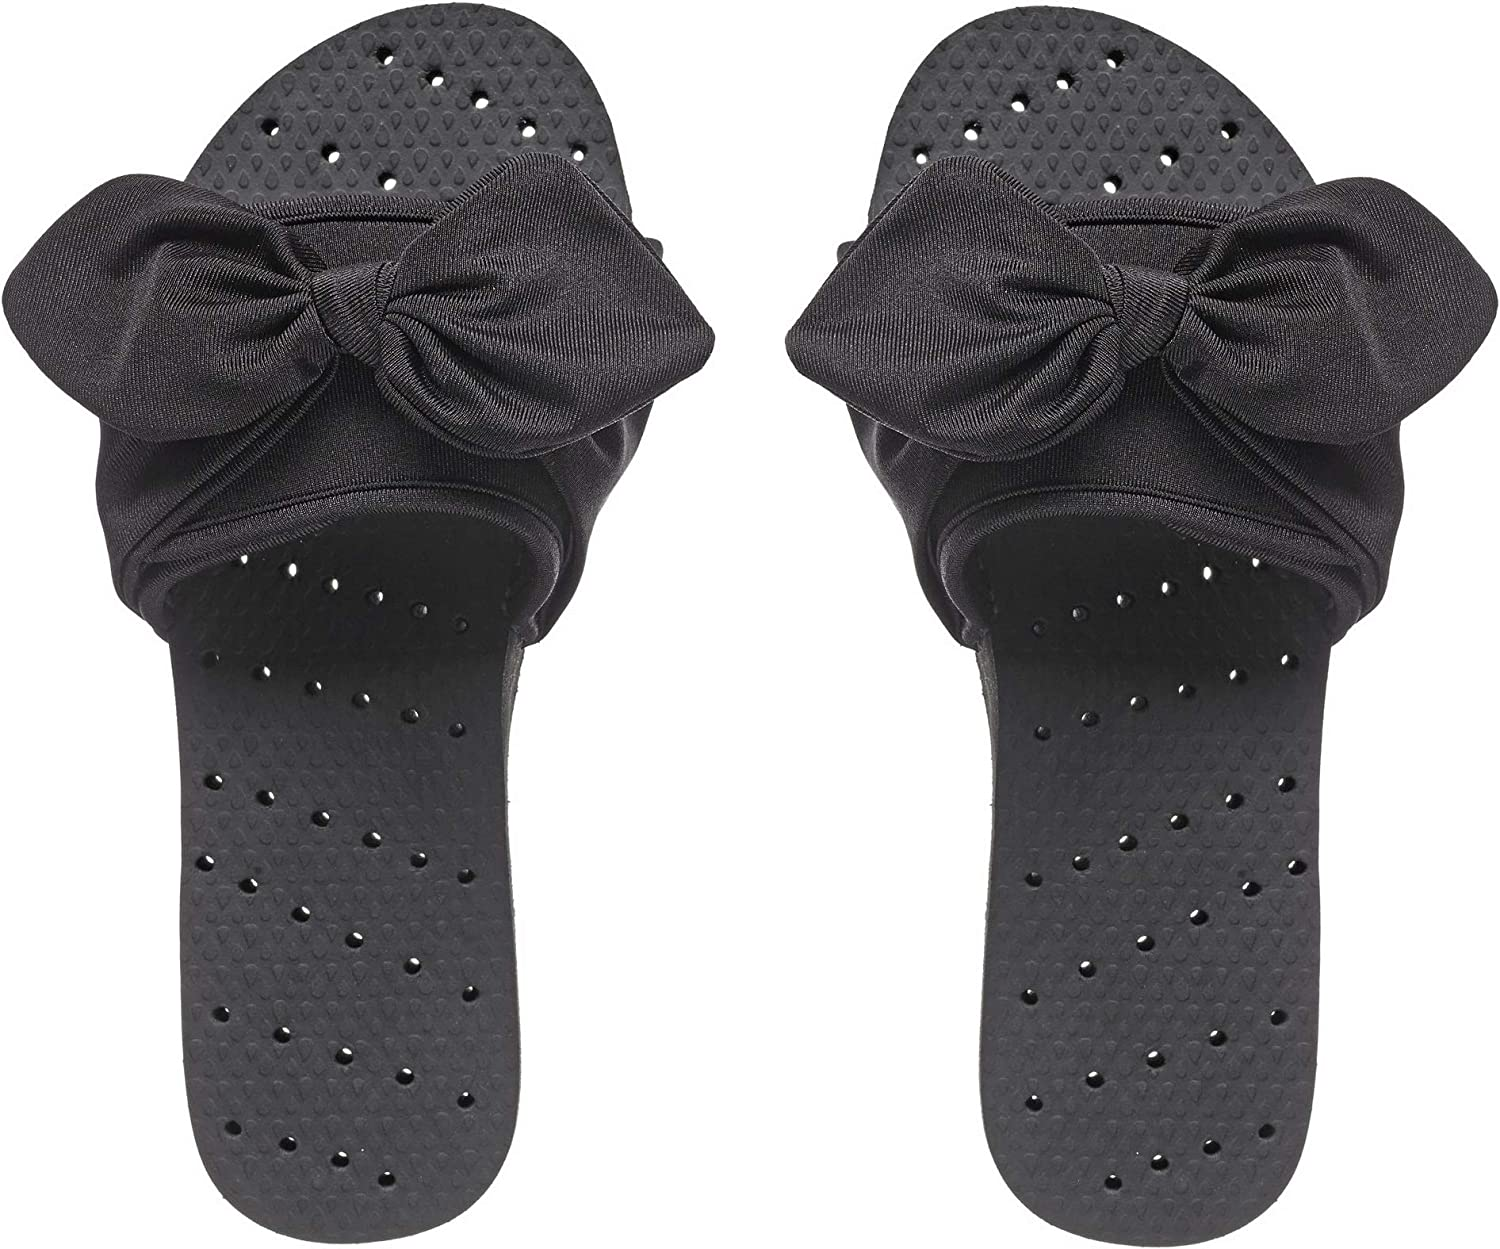 Showaflops Womens' Antimicrobial Shower & Water Sandals for Pool, Beach, Dorm and Gym - Adjustable Slide